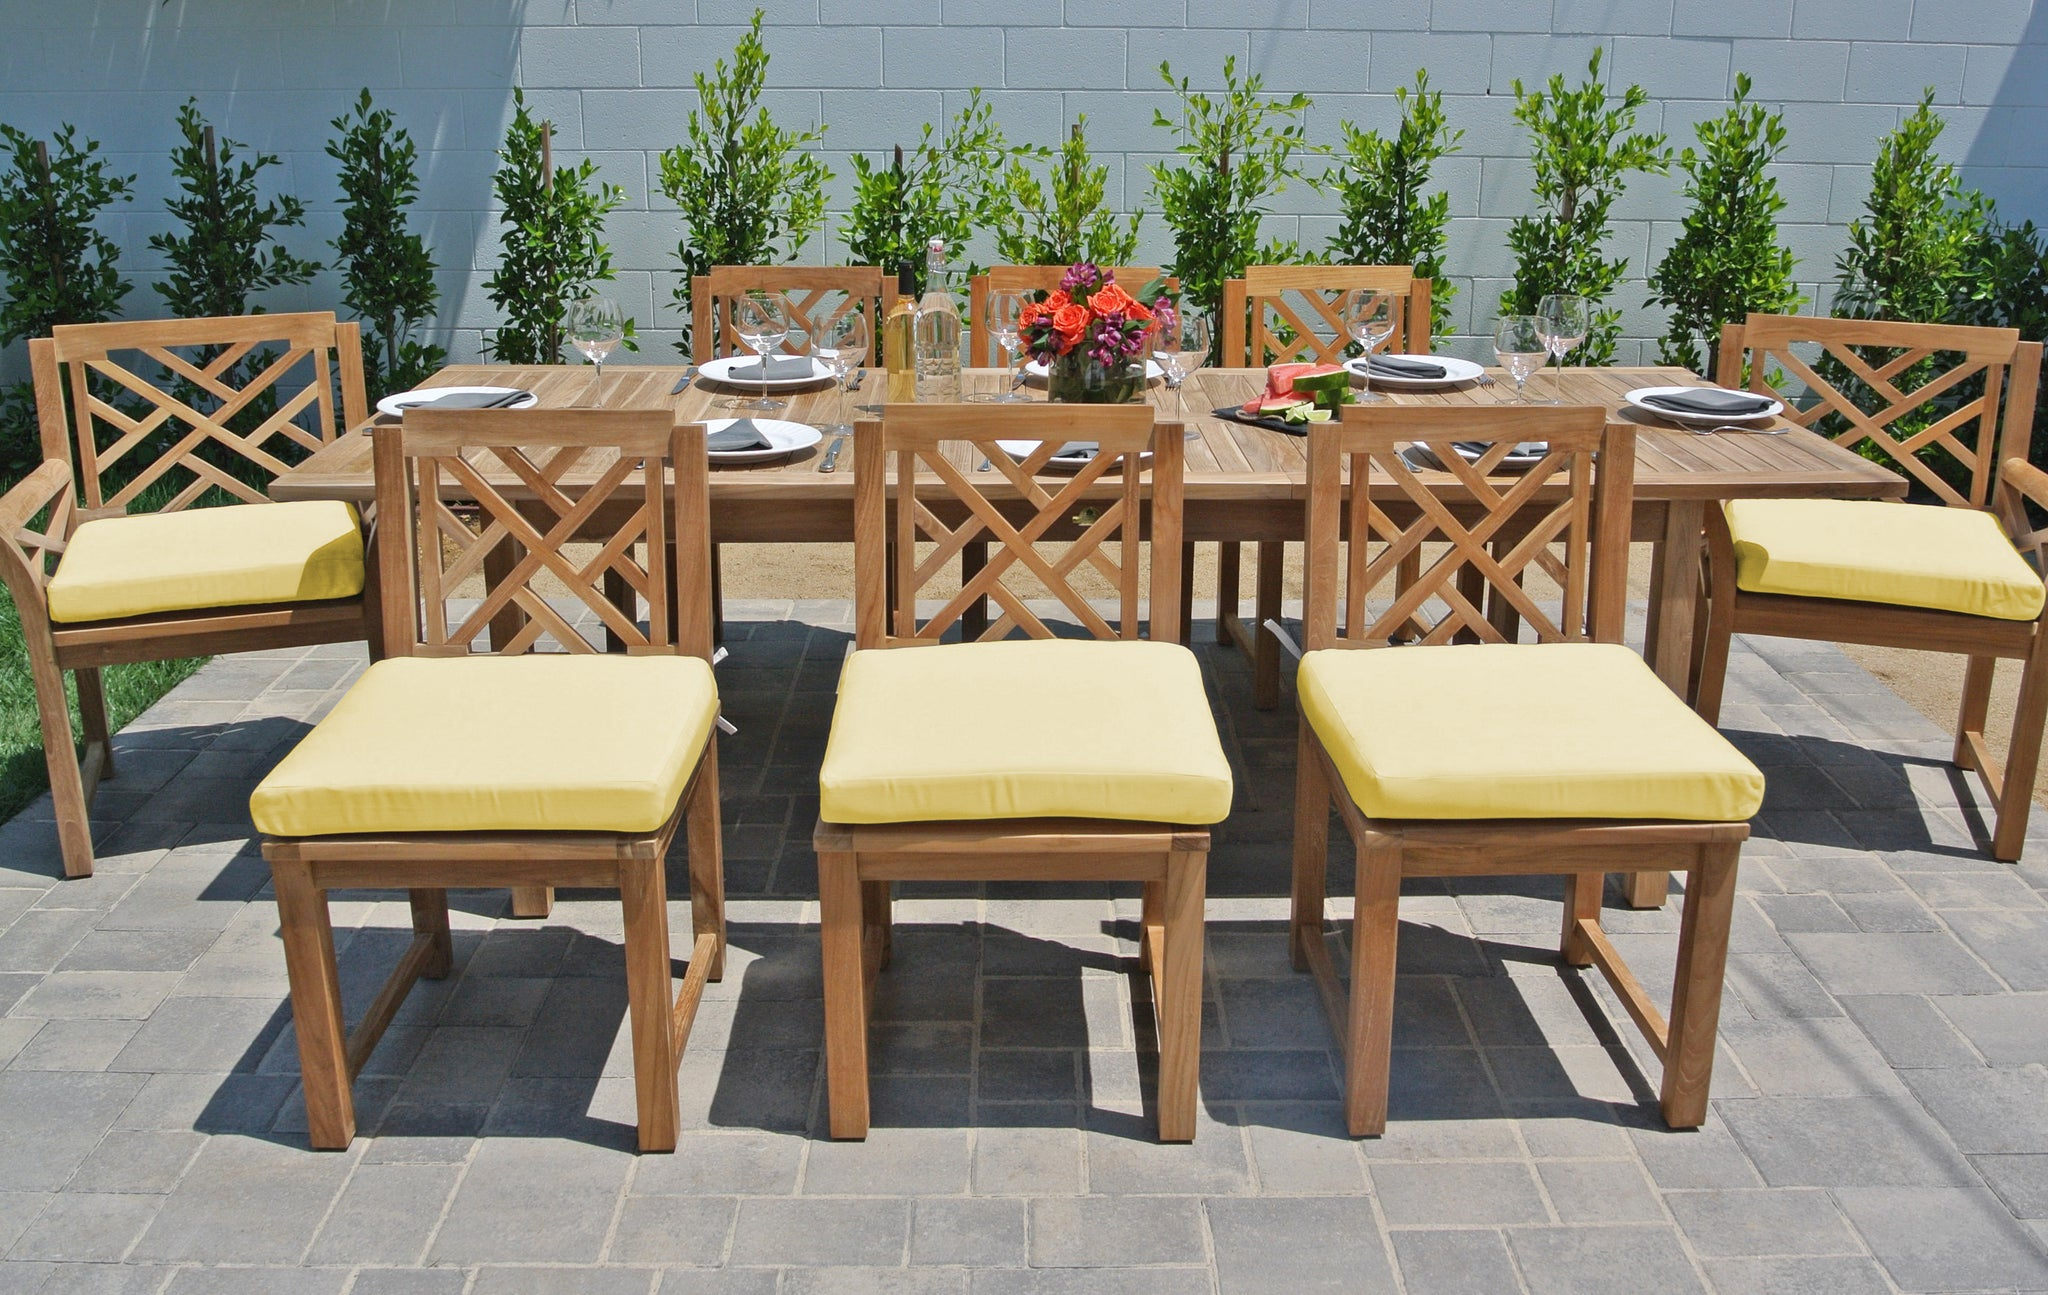 Teak Patio Furniture Outdoor Dining Set Expansion